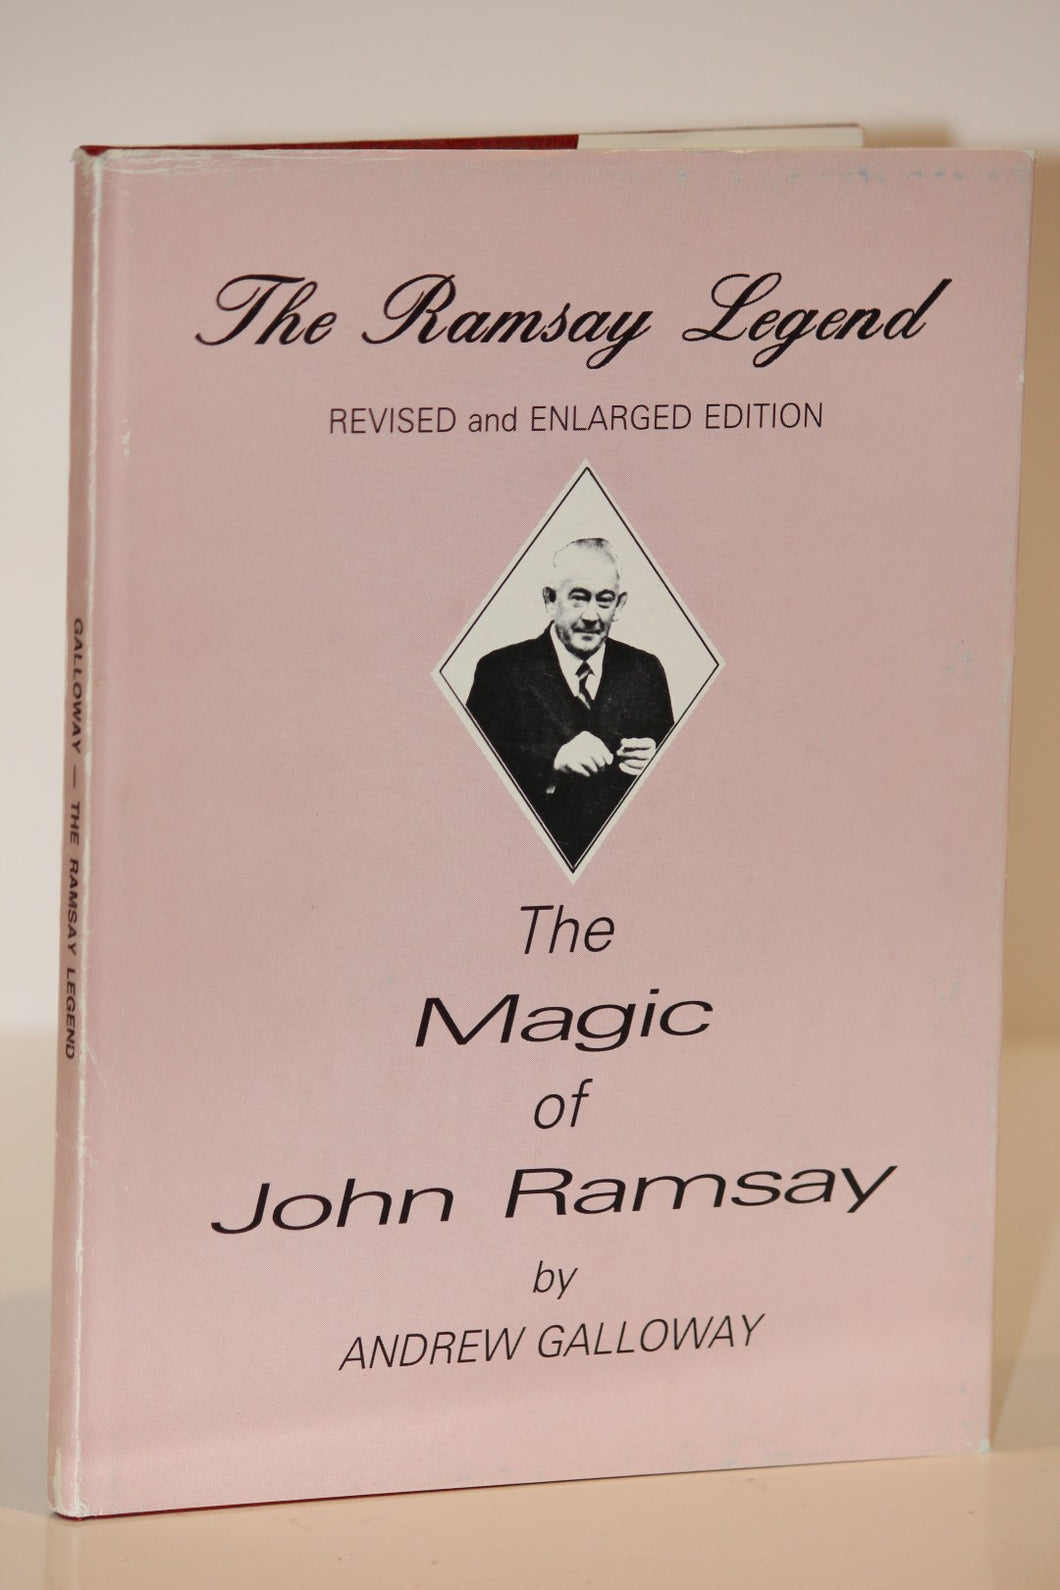 The Ramsay Legend:  The Magic of John Ramsay  -  Andrew Galloway